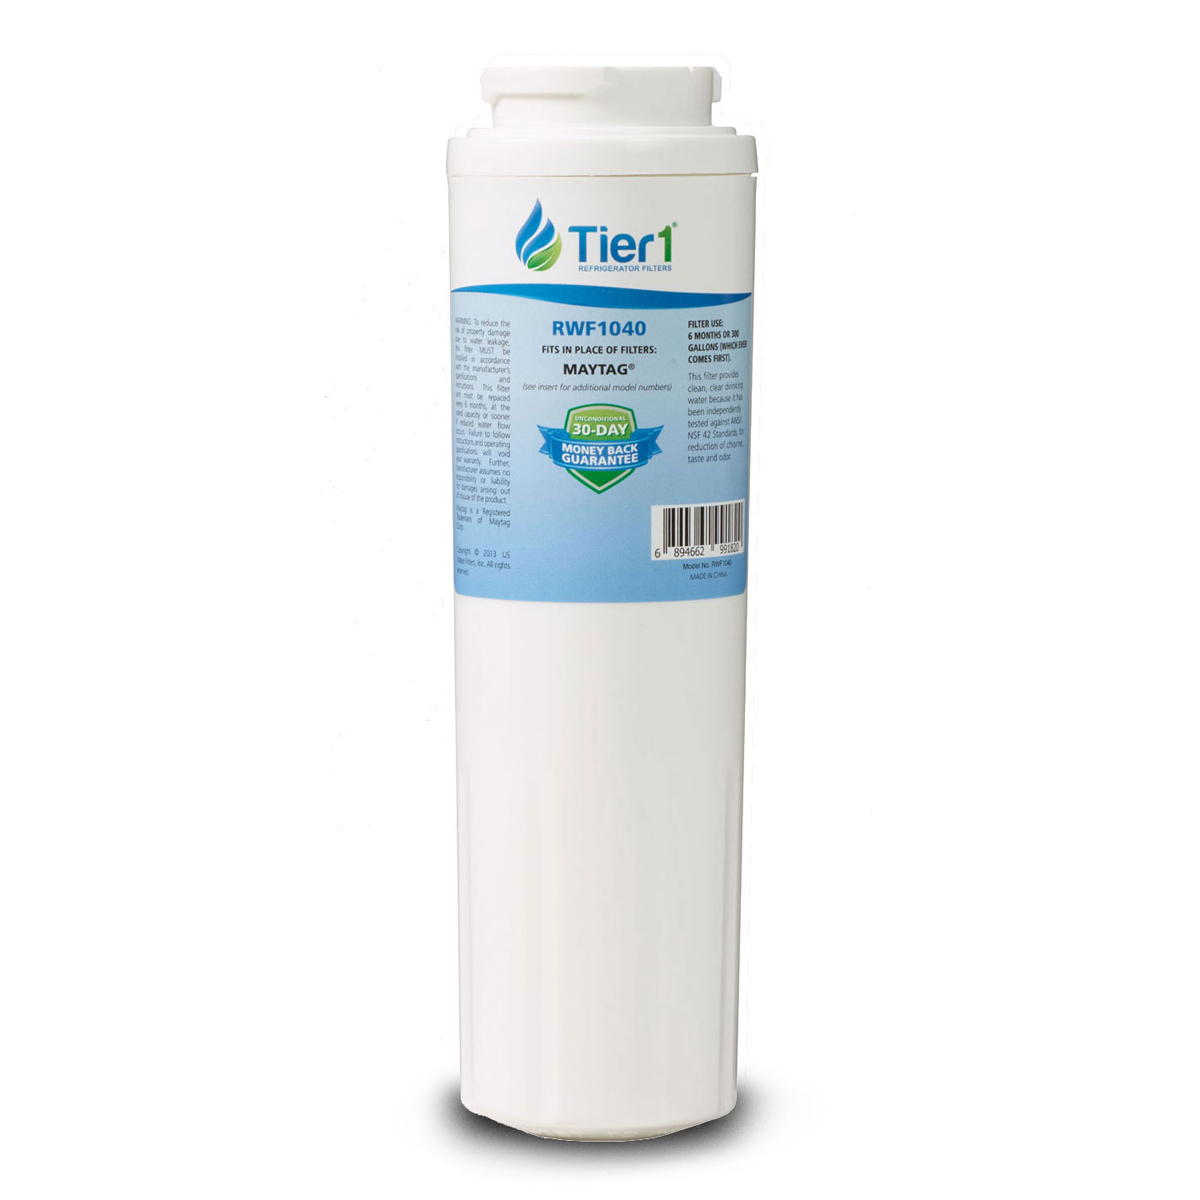 Tier1 EveryDrop EDR4RXD1 Maytag UKF8001 Refrigerator Water Filter Replacement Comparable TIER1-RWF1040